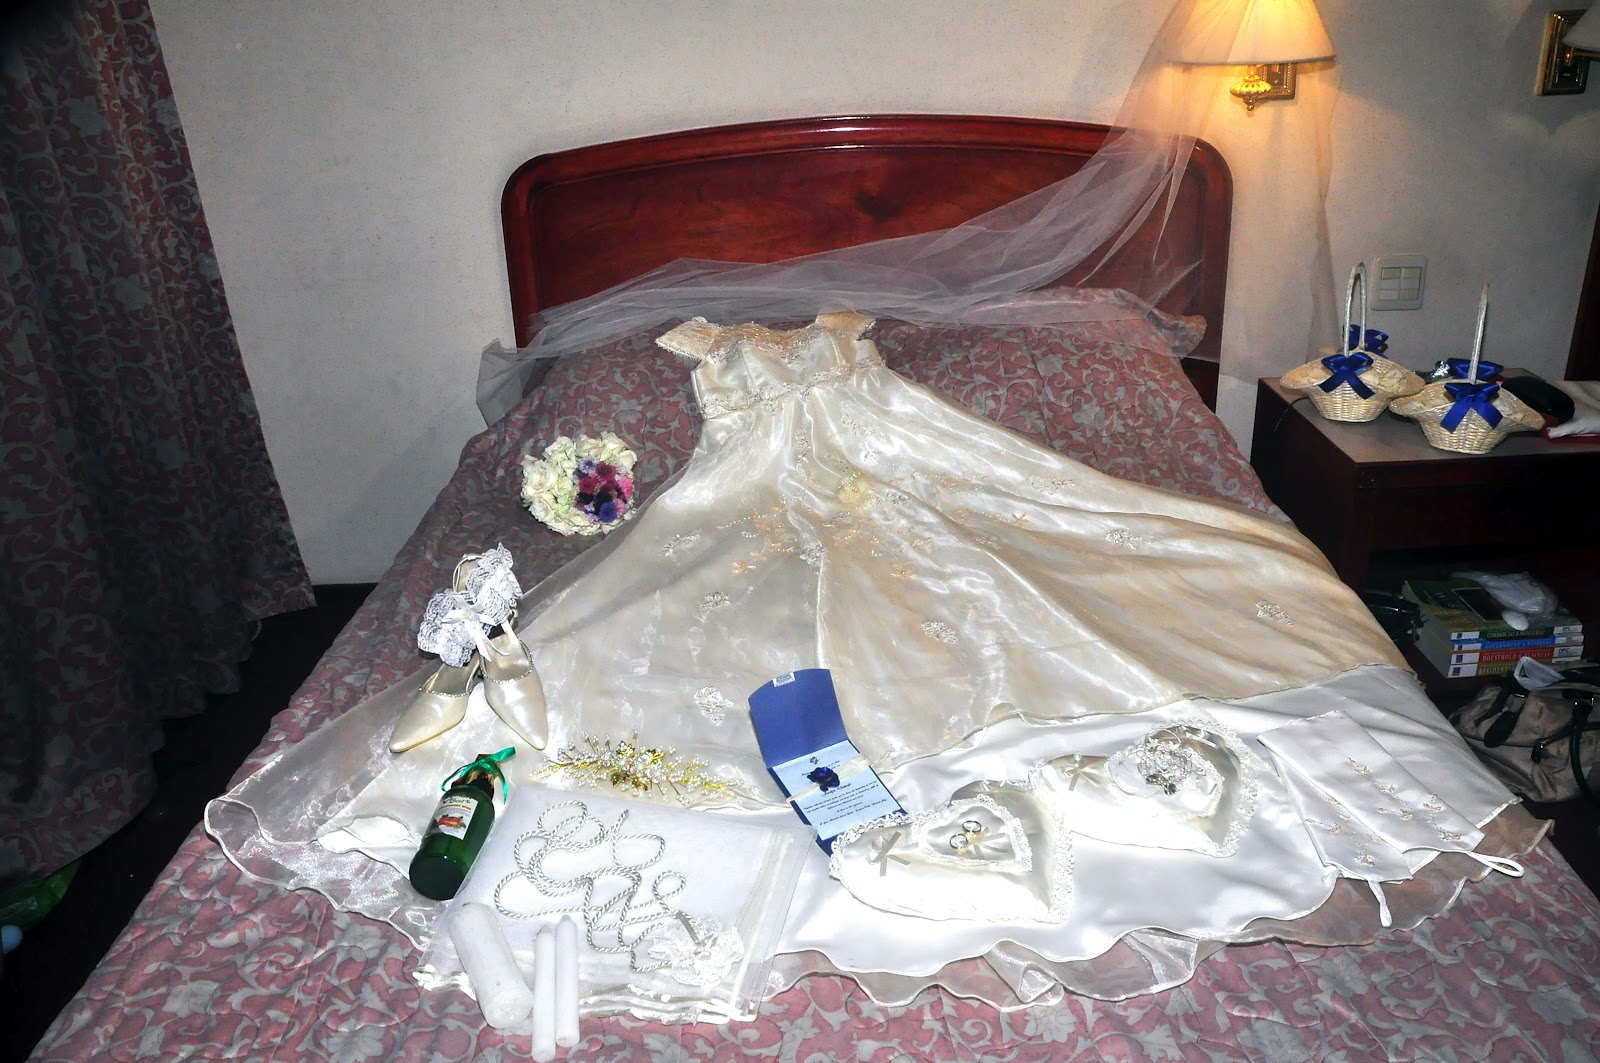 d392205b643 The Thing About Purchasing Your Own Gown Is That You Can Keep It And Either  Have